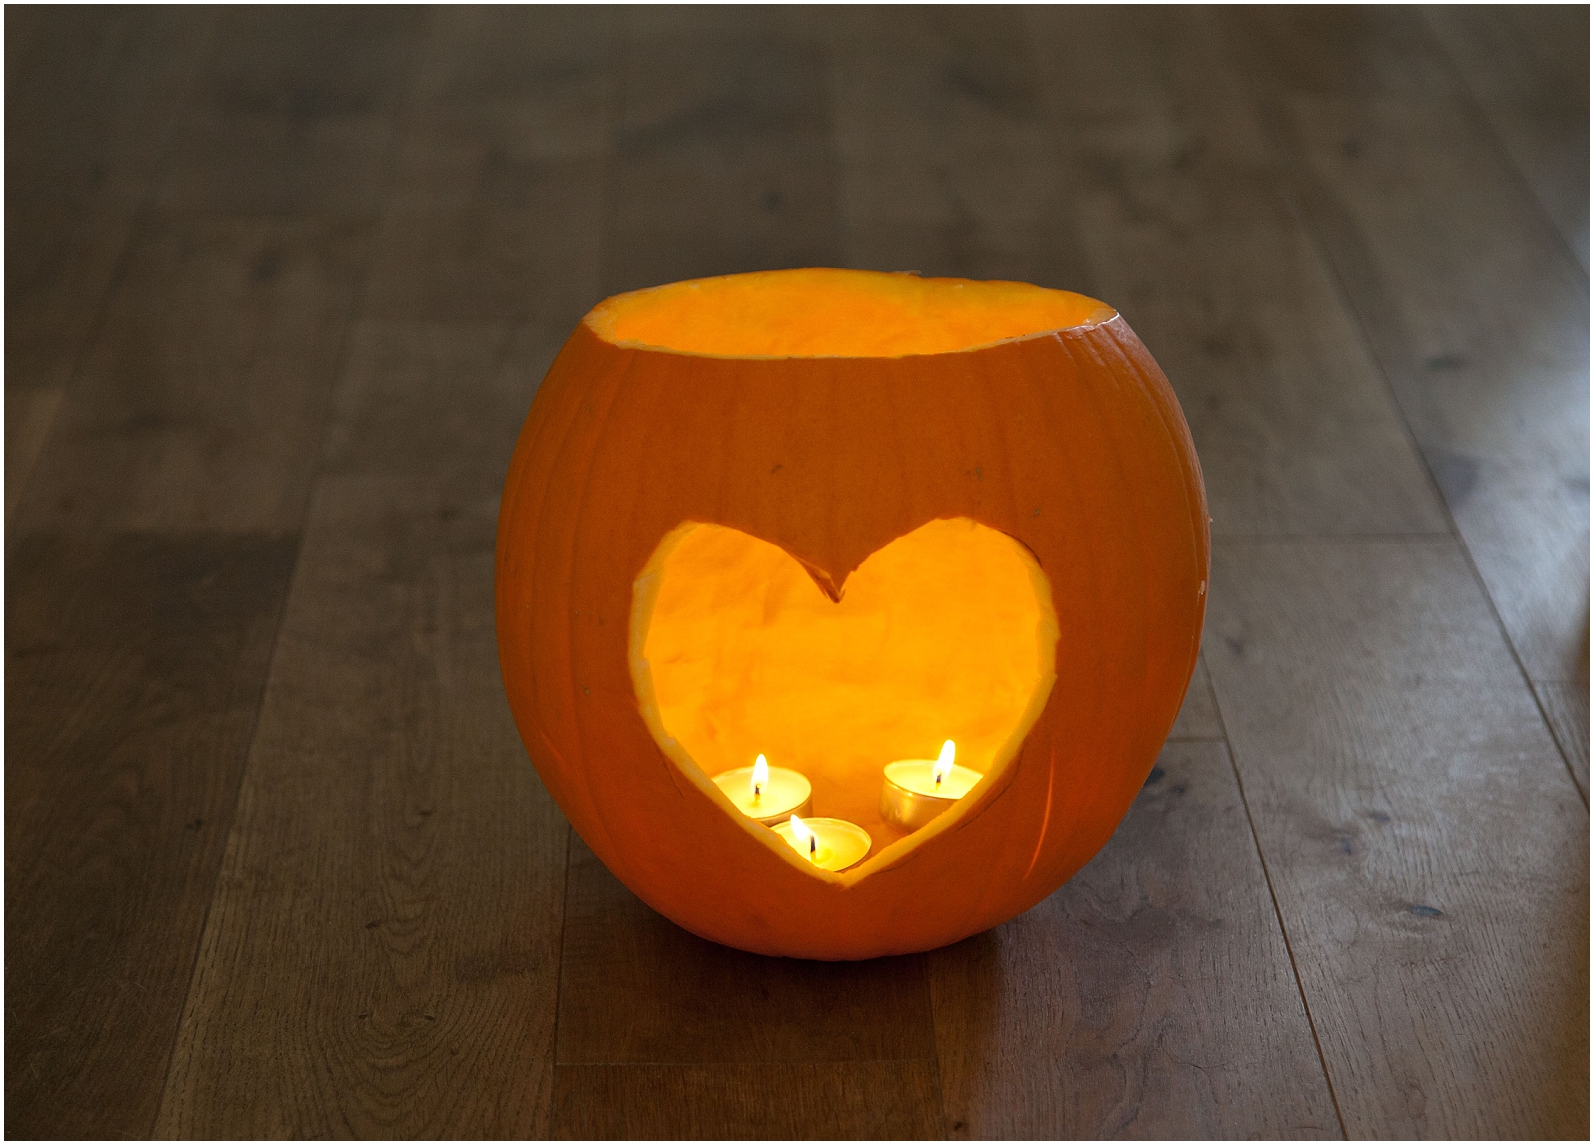 Carve a heart, help a child and light up a night of hope..